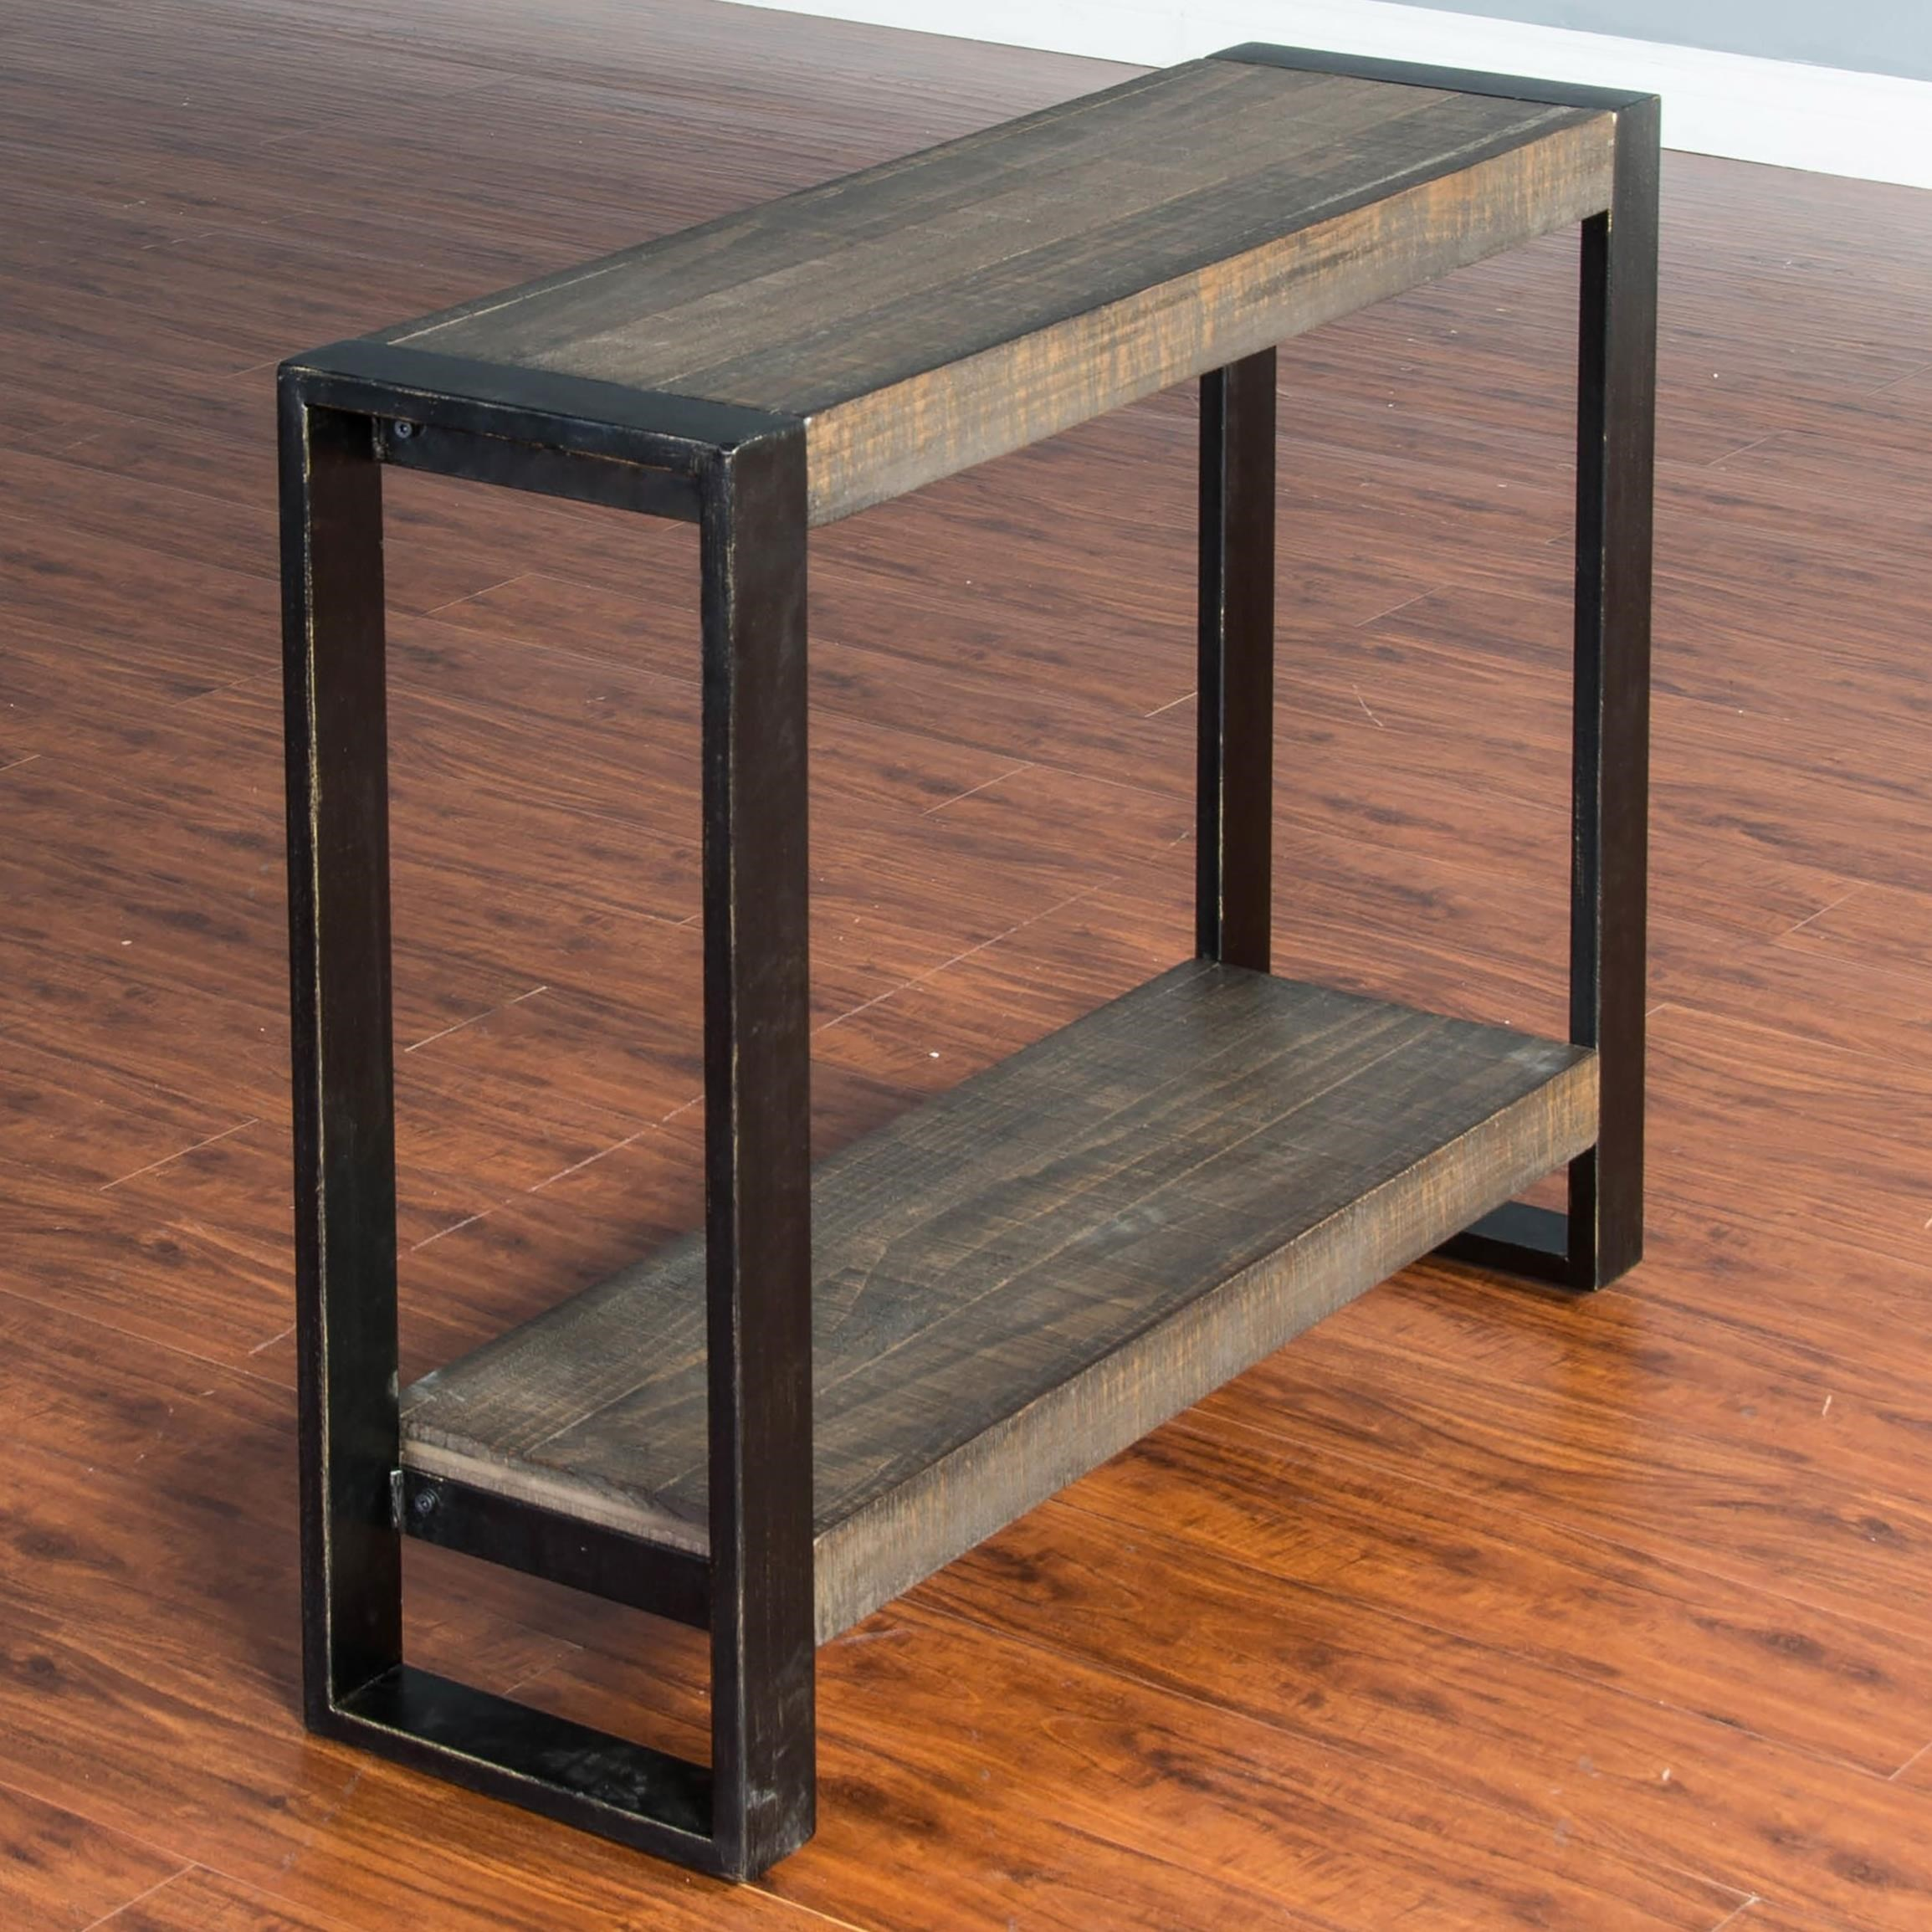 Bon Distressed Pine Chair Side Table (Large) With Industrial Metal Frame